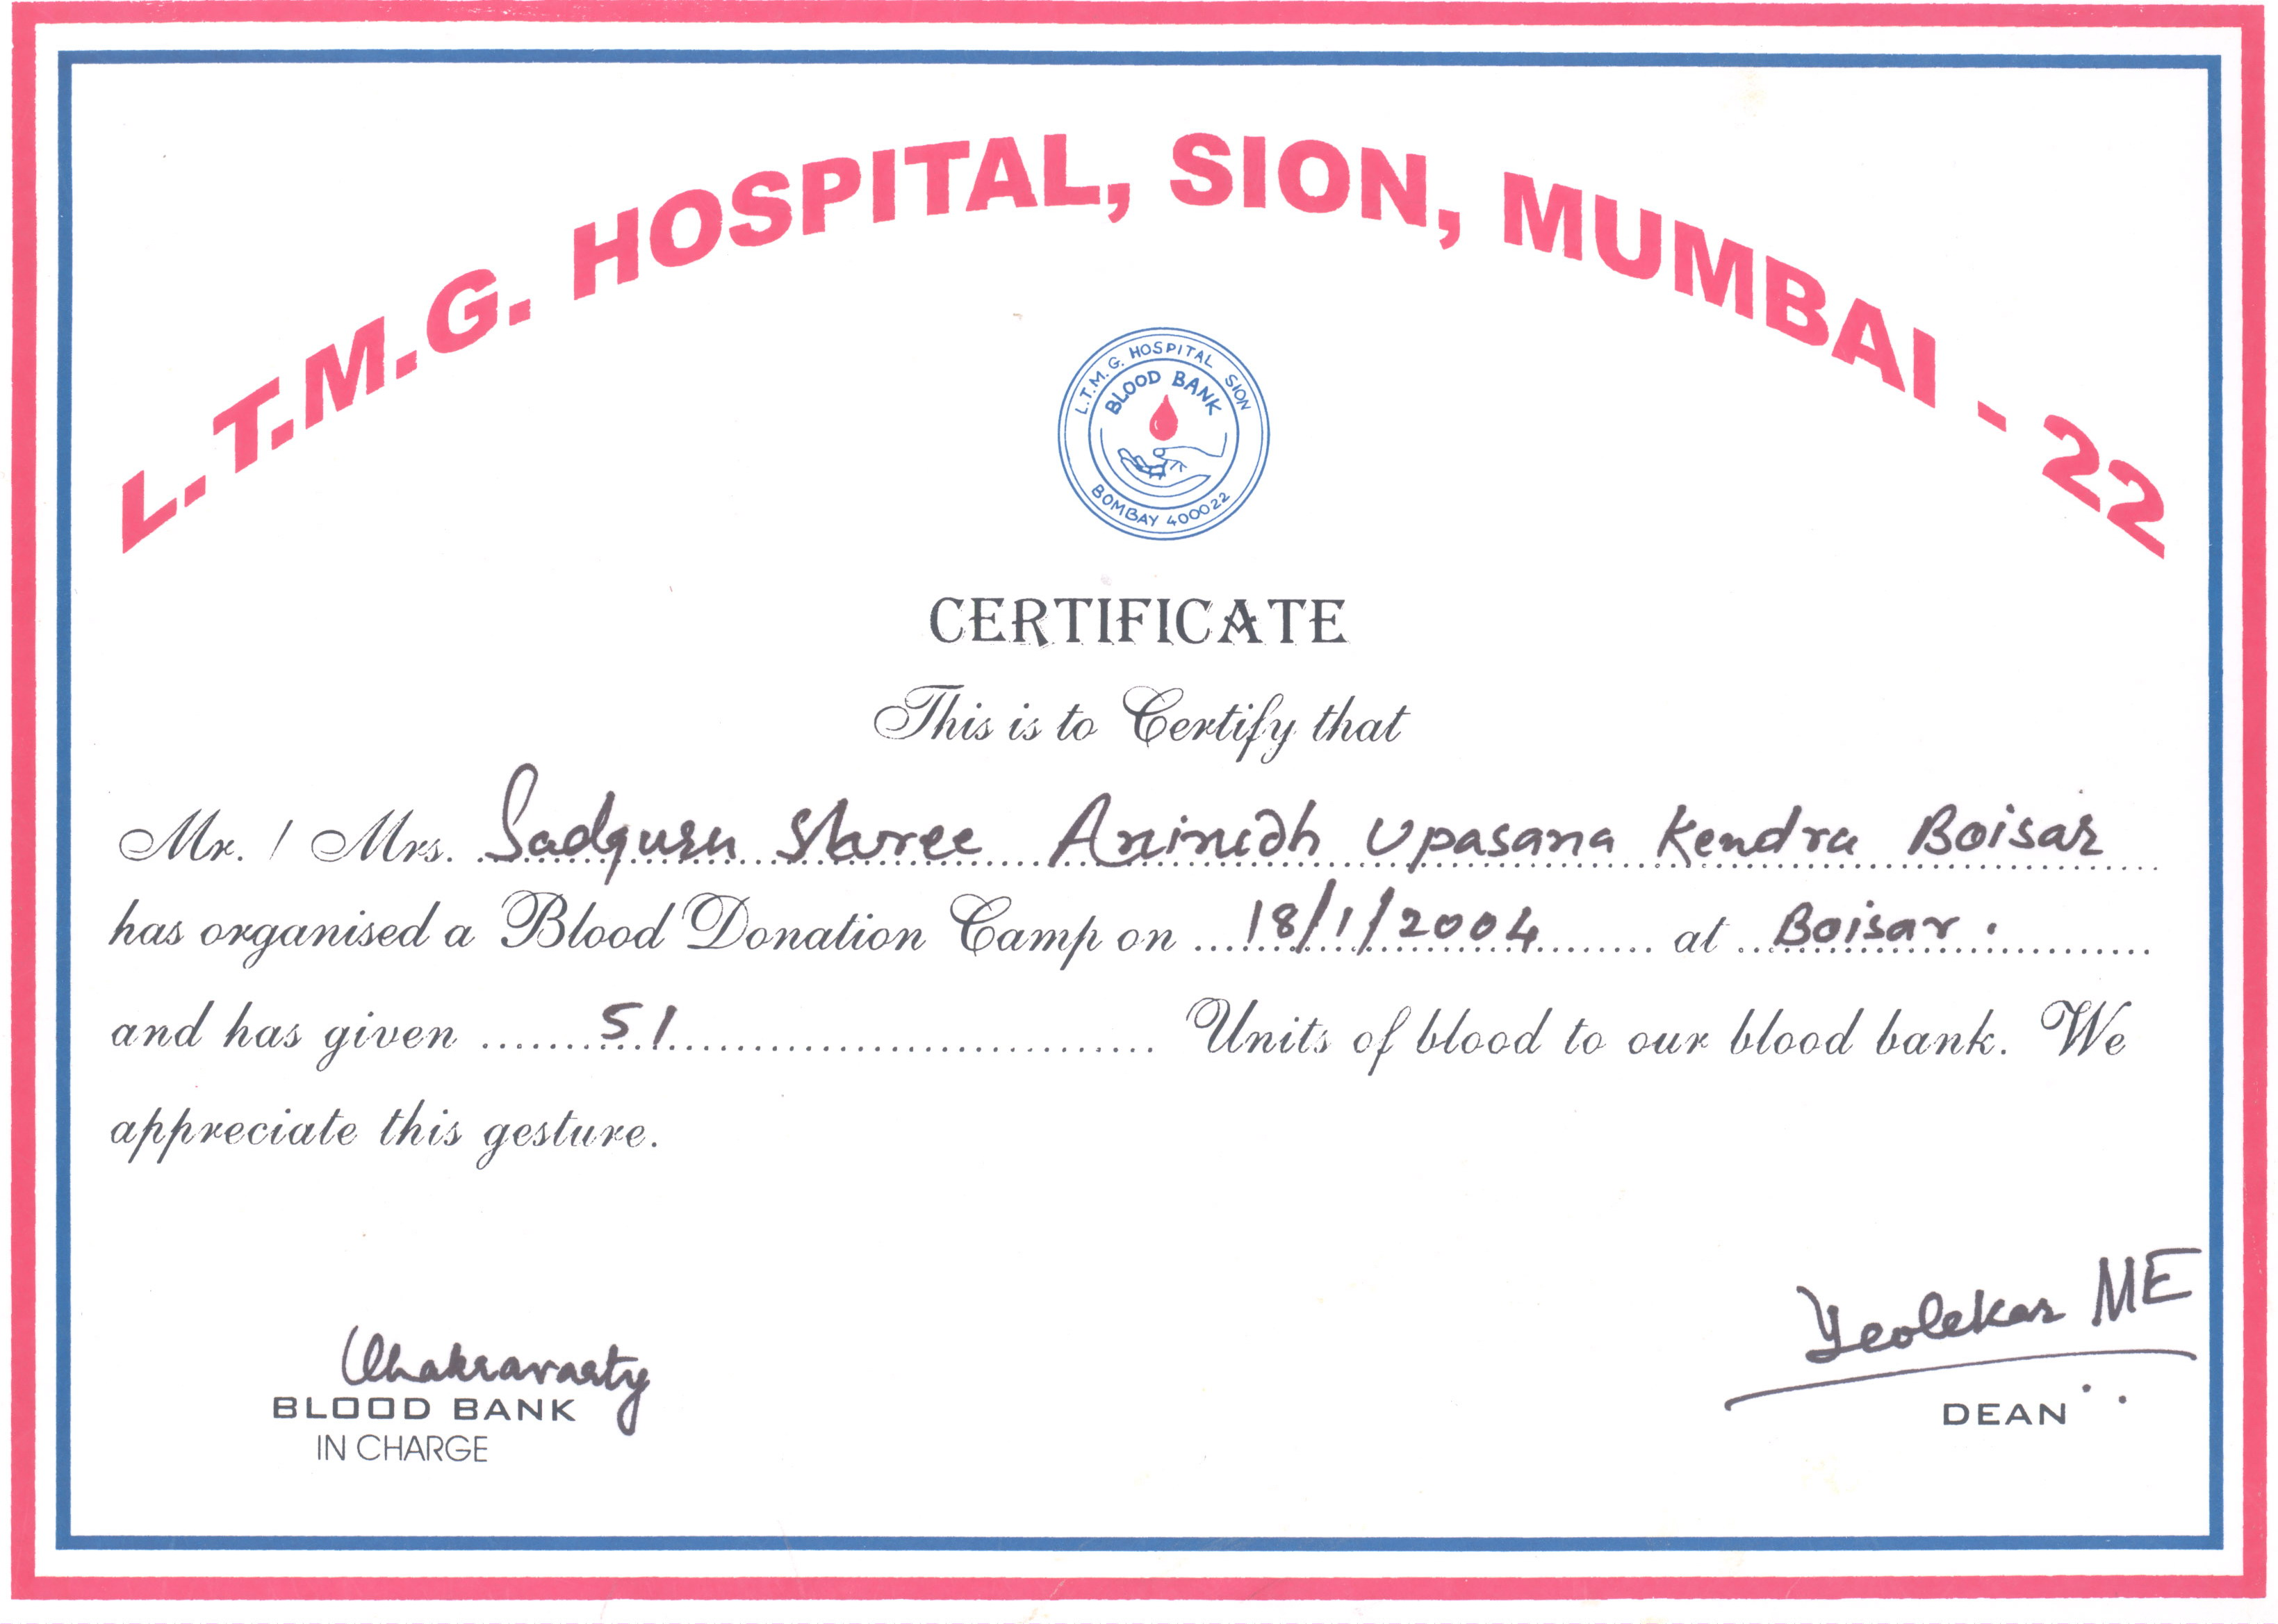 Appreciation Letter Blood Donation Camps Shree Aniruddha Upasana